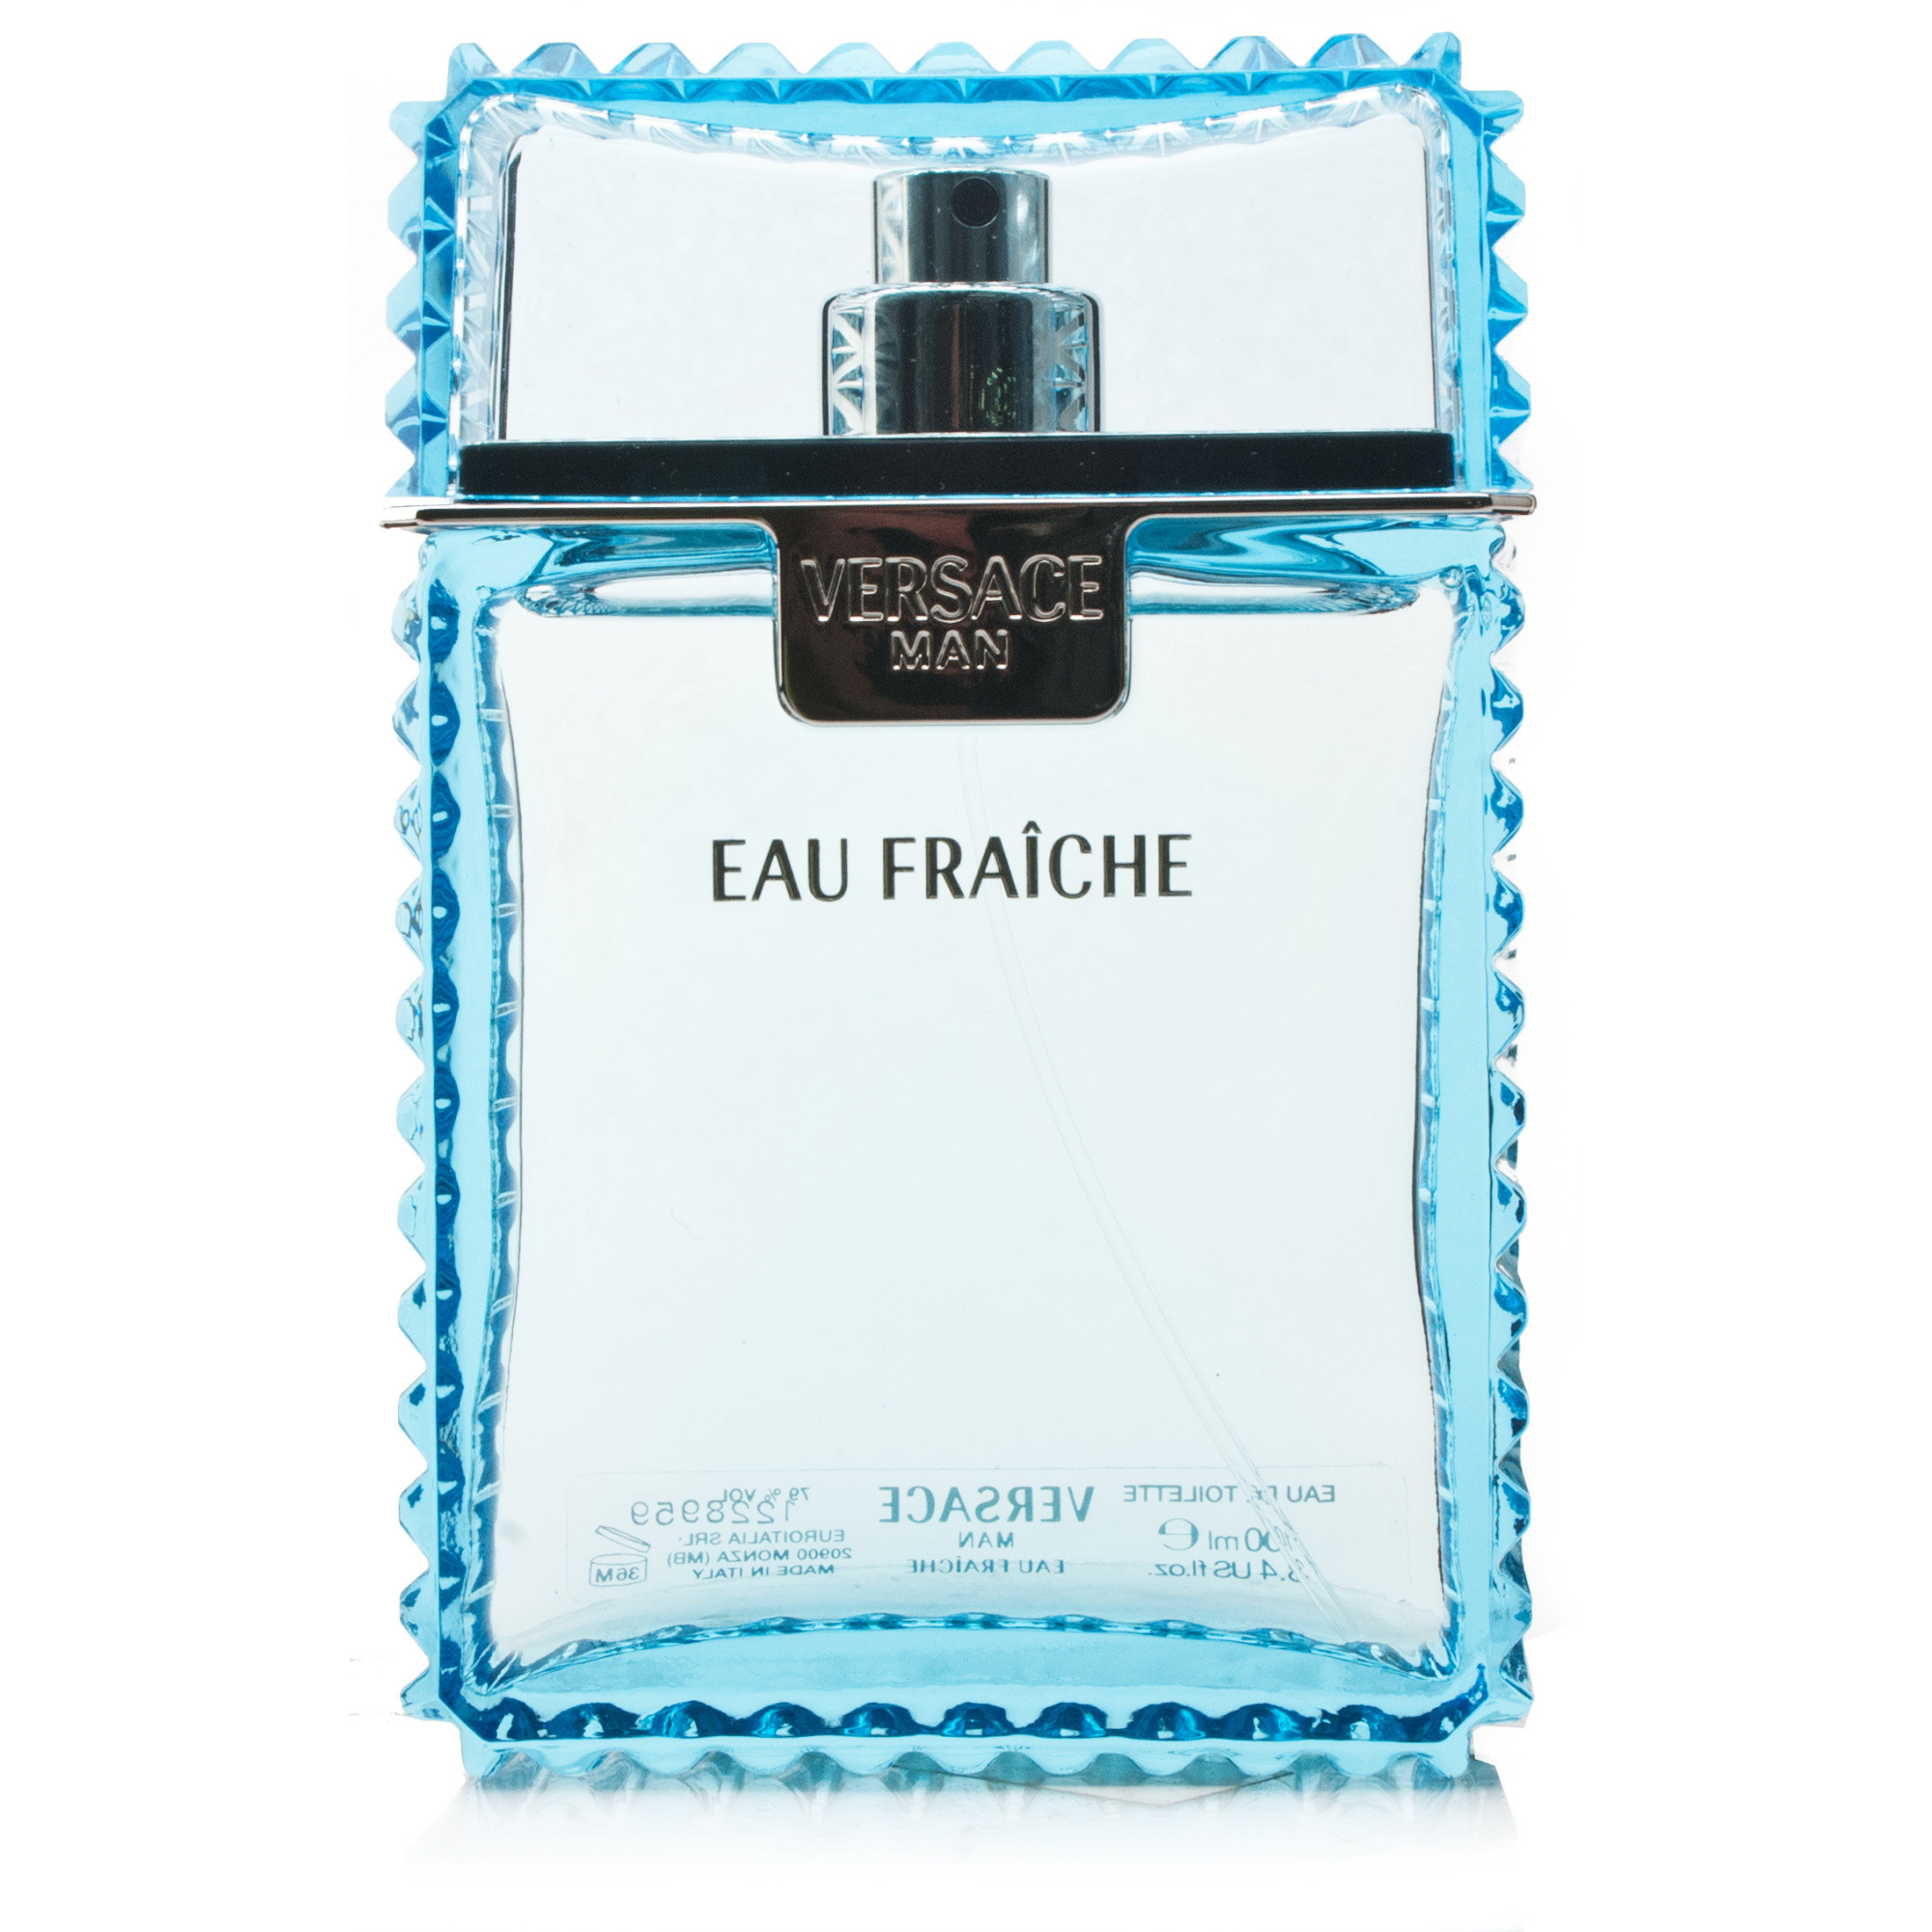 Versace Man Eau Fraiche Edt Spray 100ml